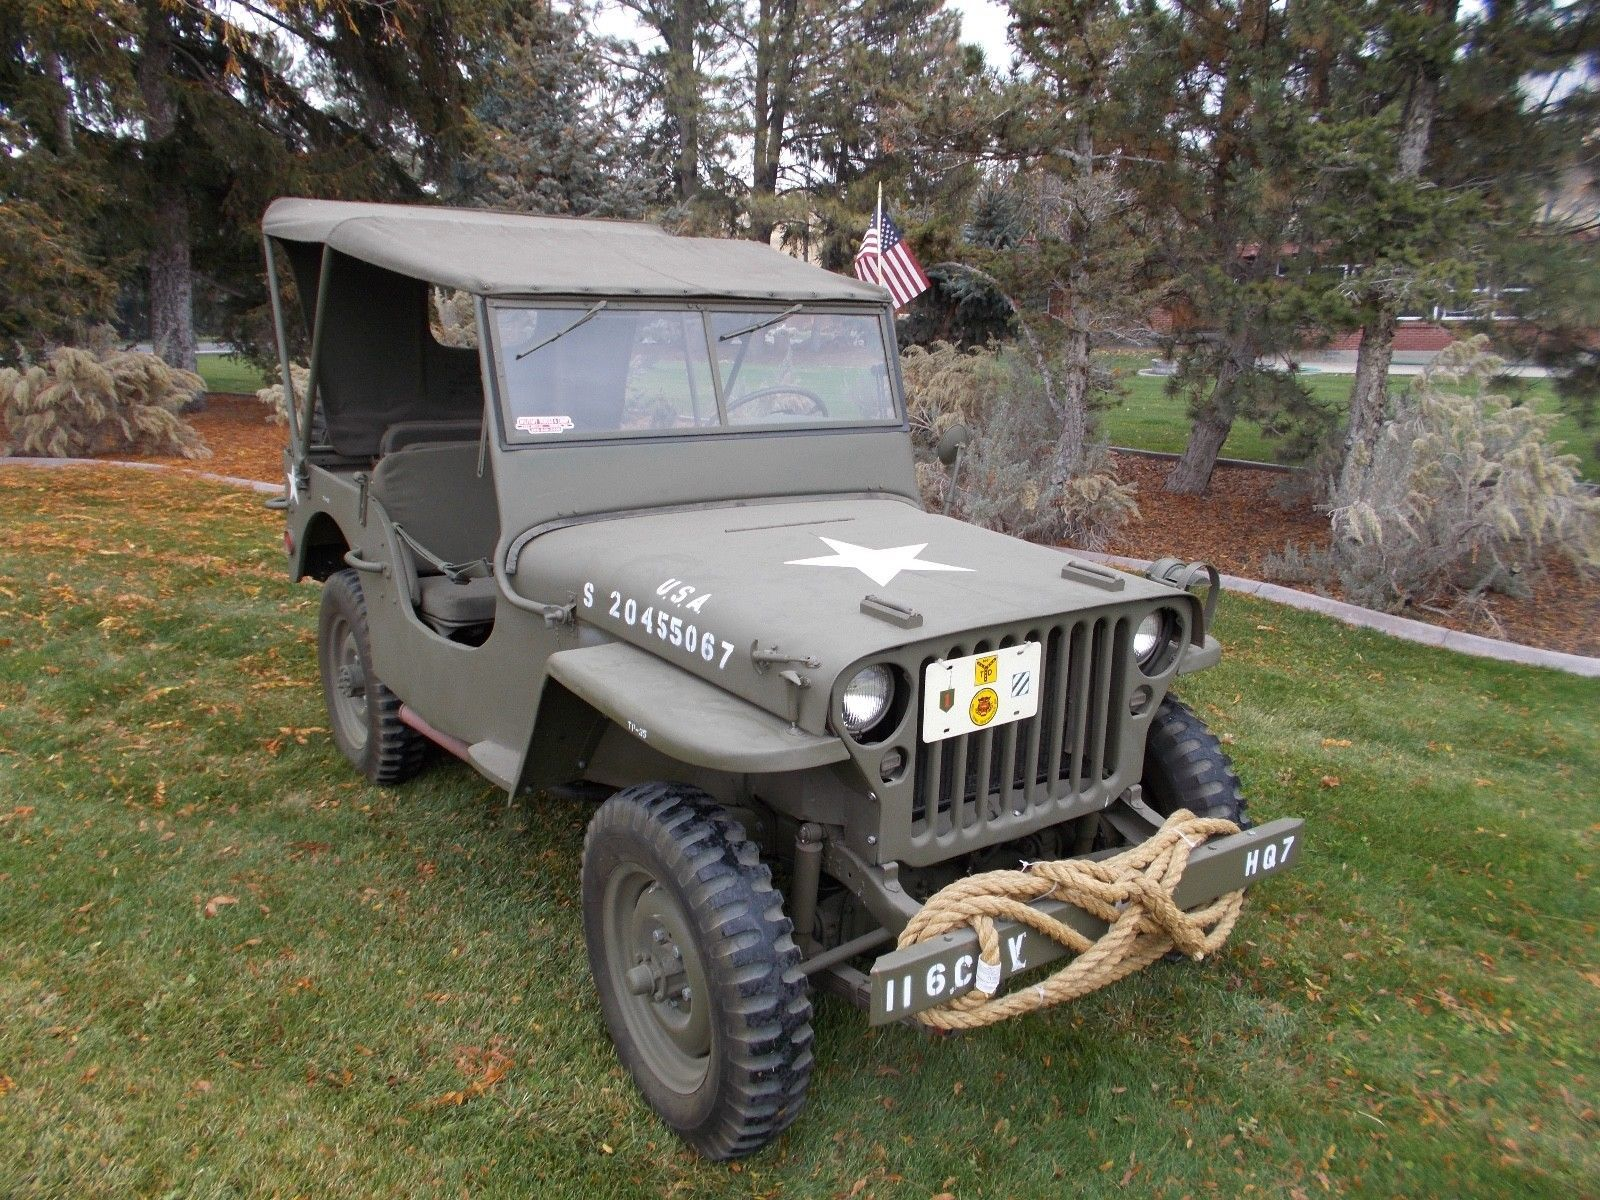 jeep yorkshire ford in sale pistonheads for willys restored models all classifieds cars exceptional gpw used